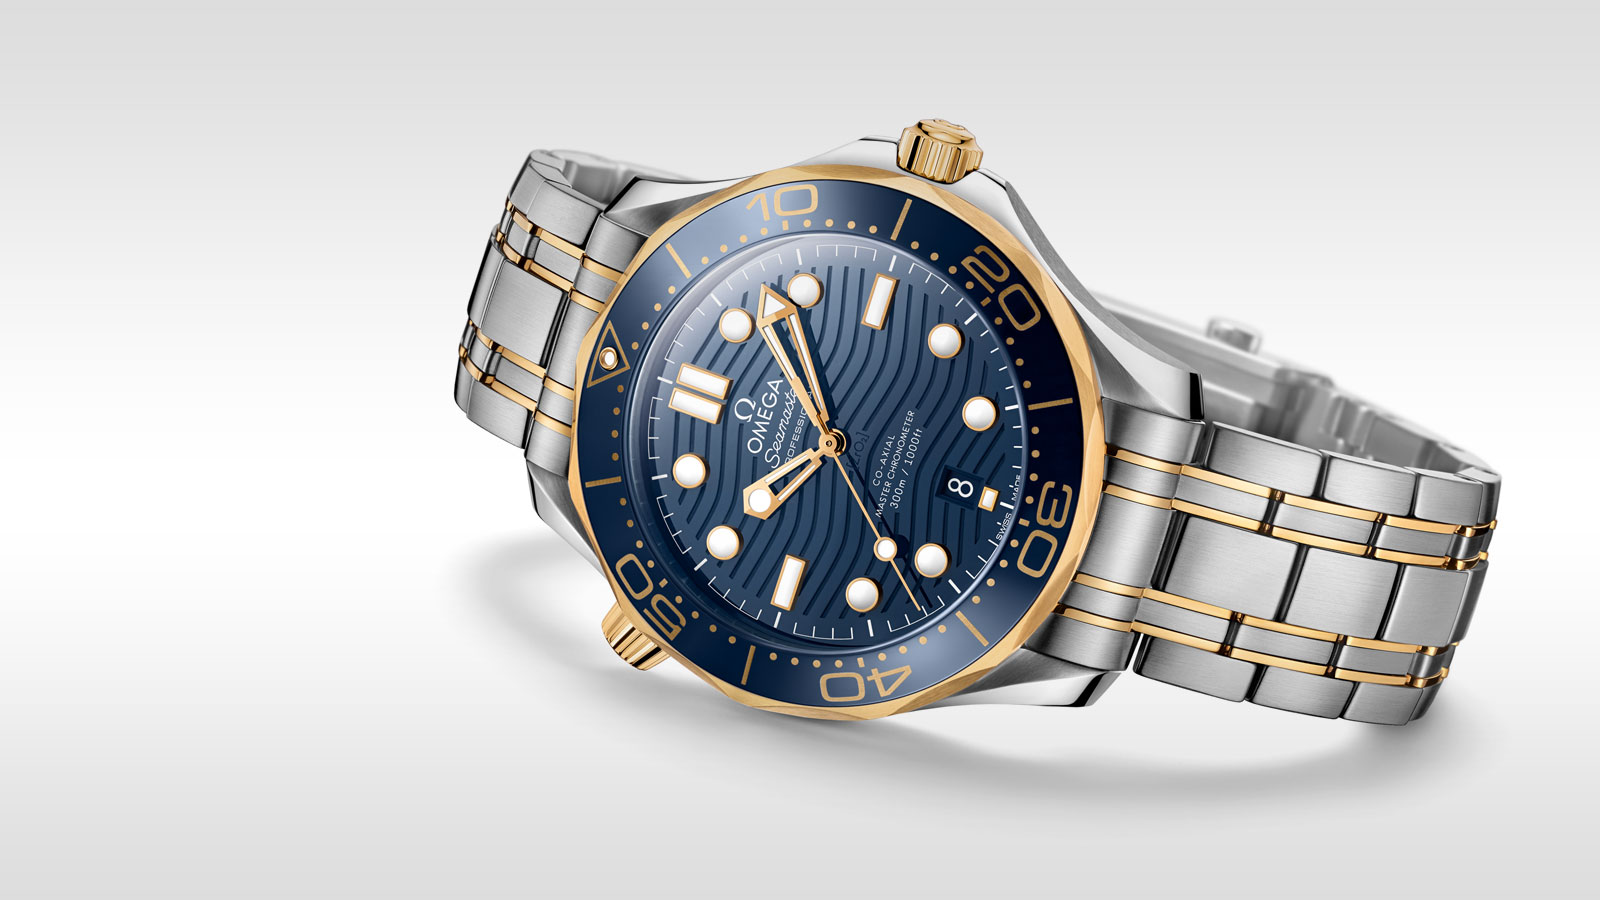 Seamaster Diver 300 M Diver 300M Omega Co‑Axial Master Chronometer 42 mm - 210.20.42.20.03.001 - View 1